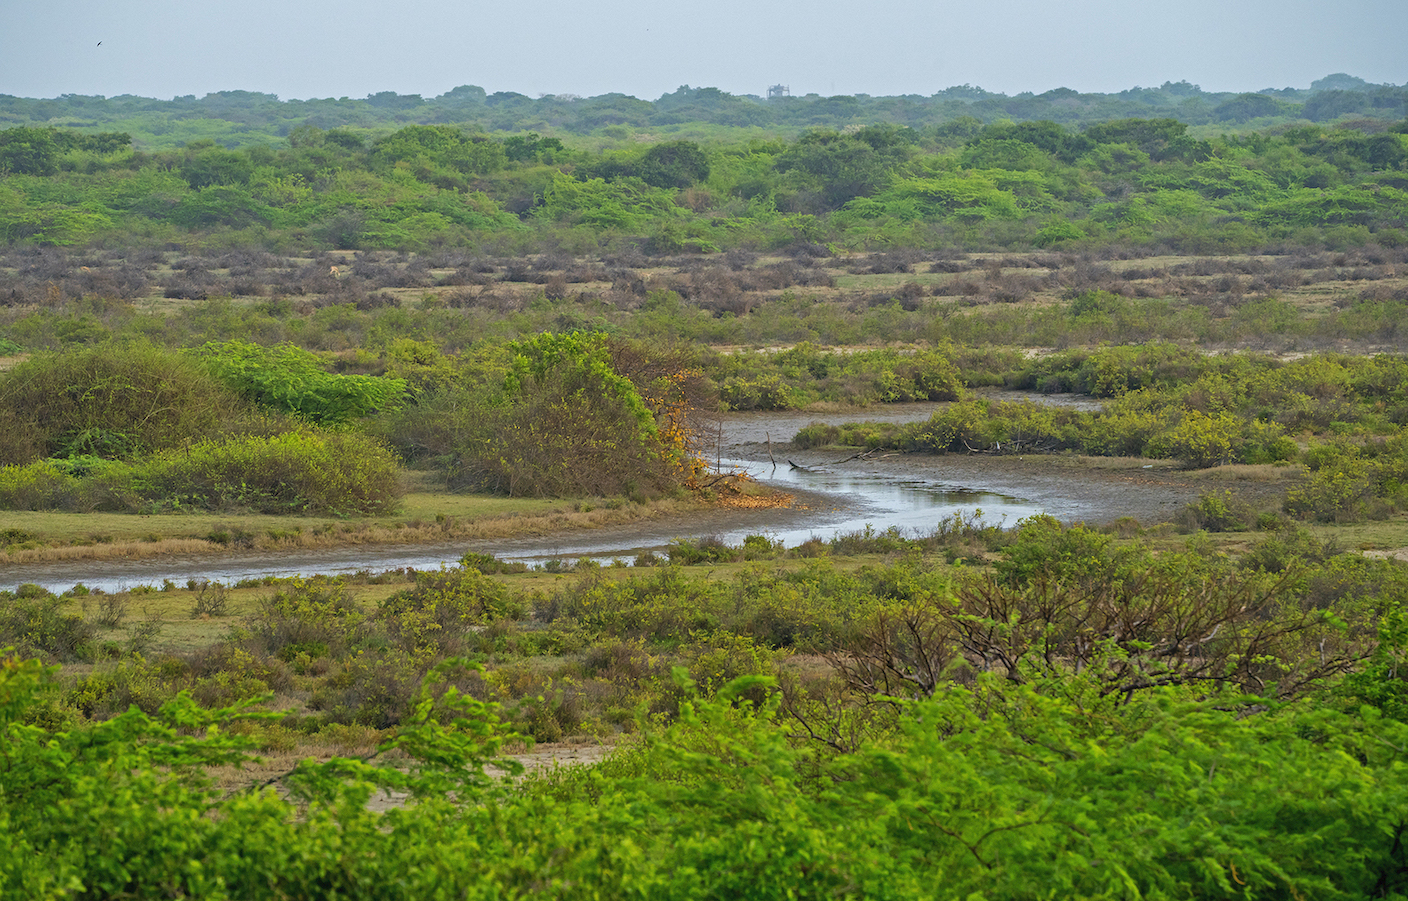 The swampy, marshy areas of Point Calimere sanctuary see a huge number of migratory waterbirds like spot-billed pelicans, black-headed ibises, flamingos, waders, and darters during the winters.